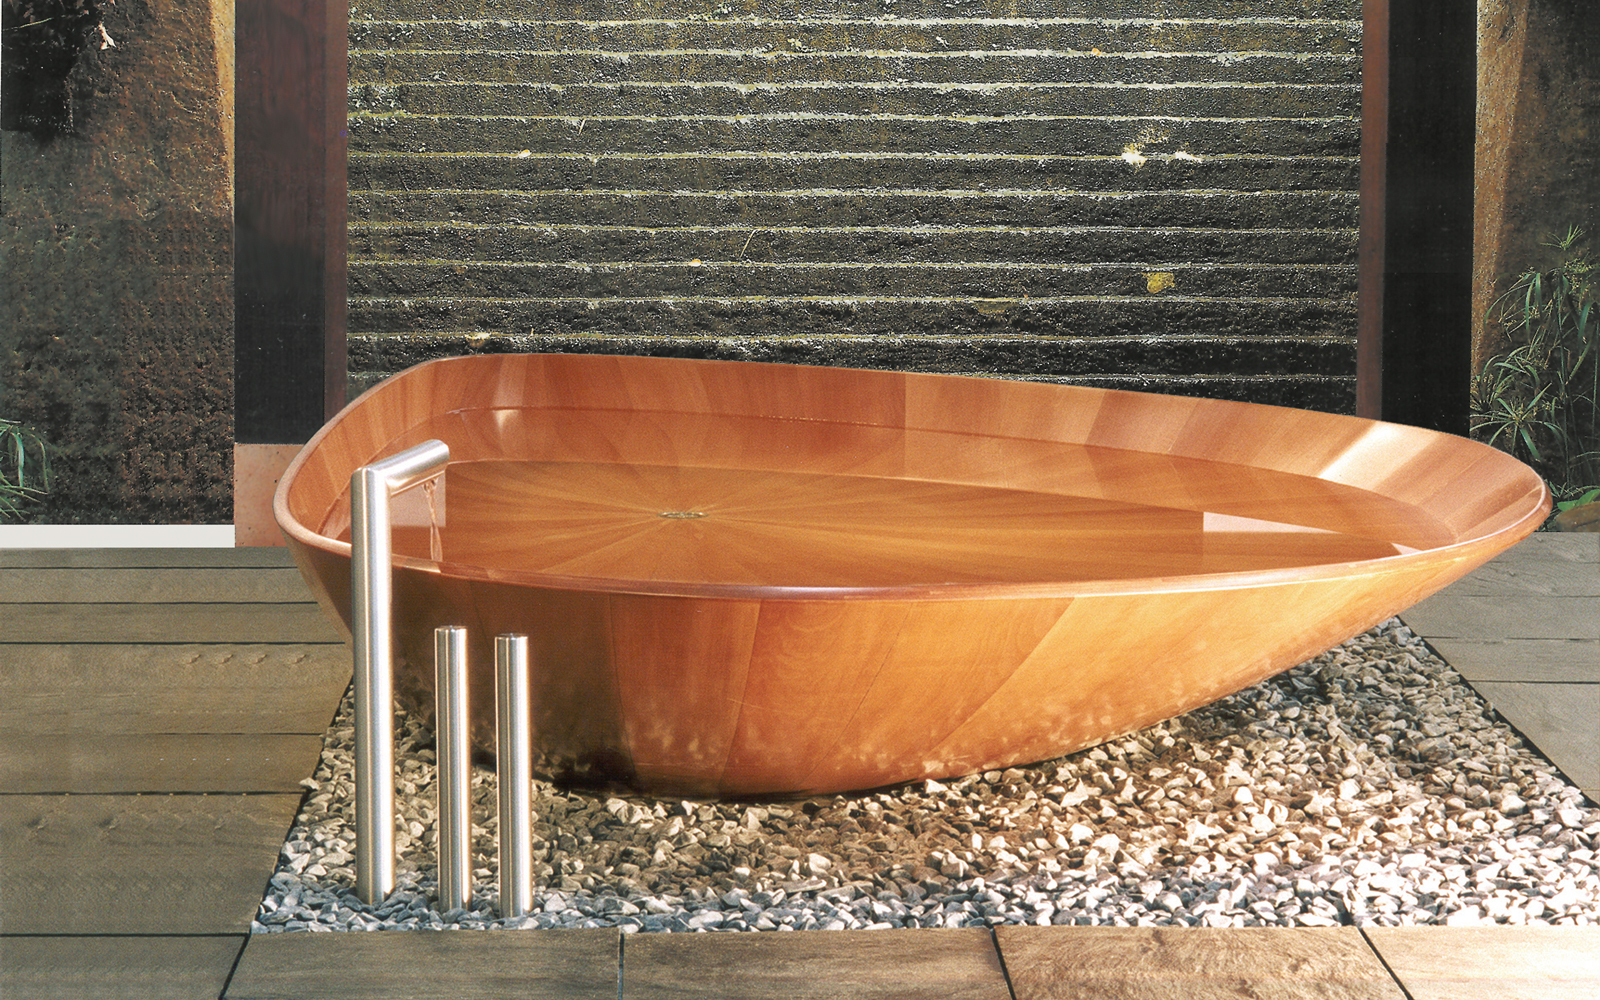 diamond shaped bathtub